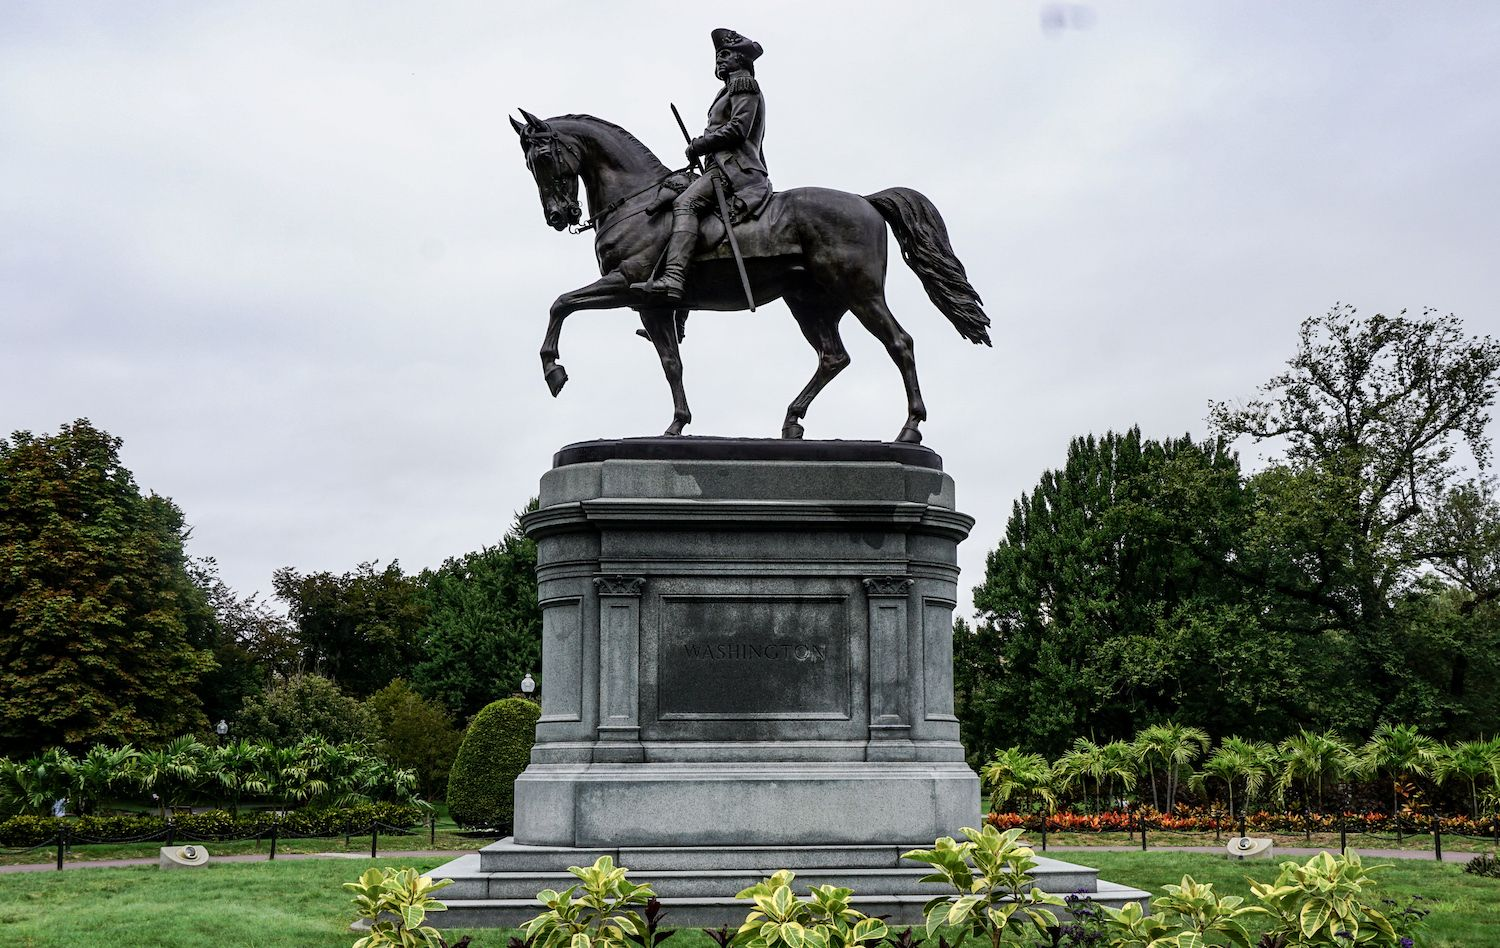 Washington statue of Washington in Boston Gardens